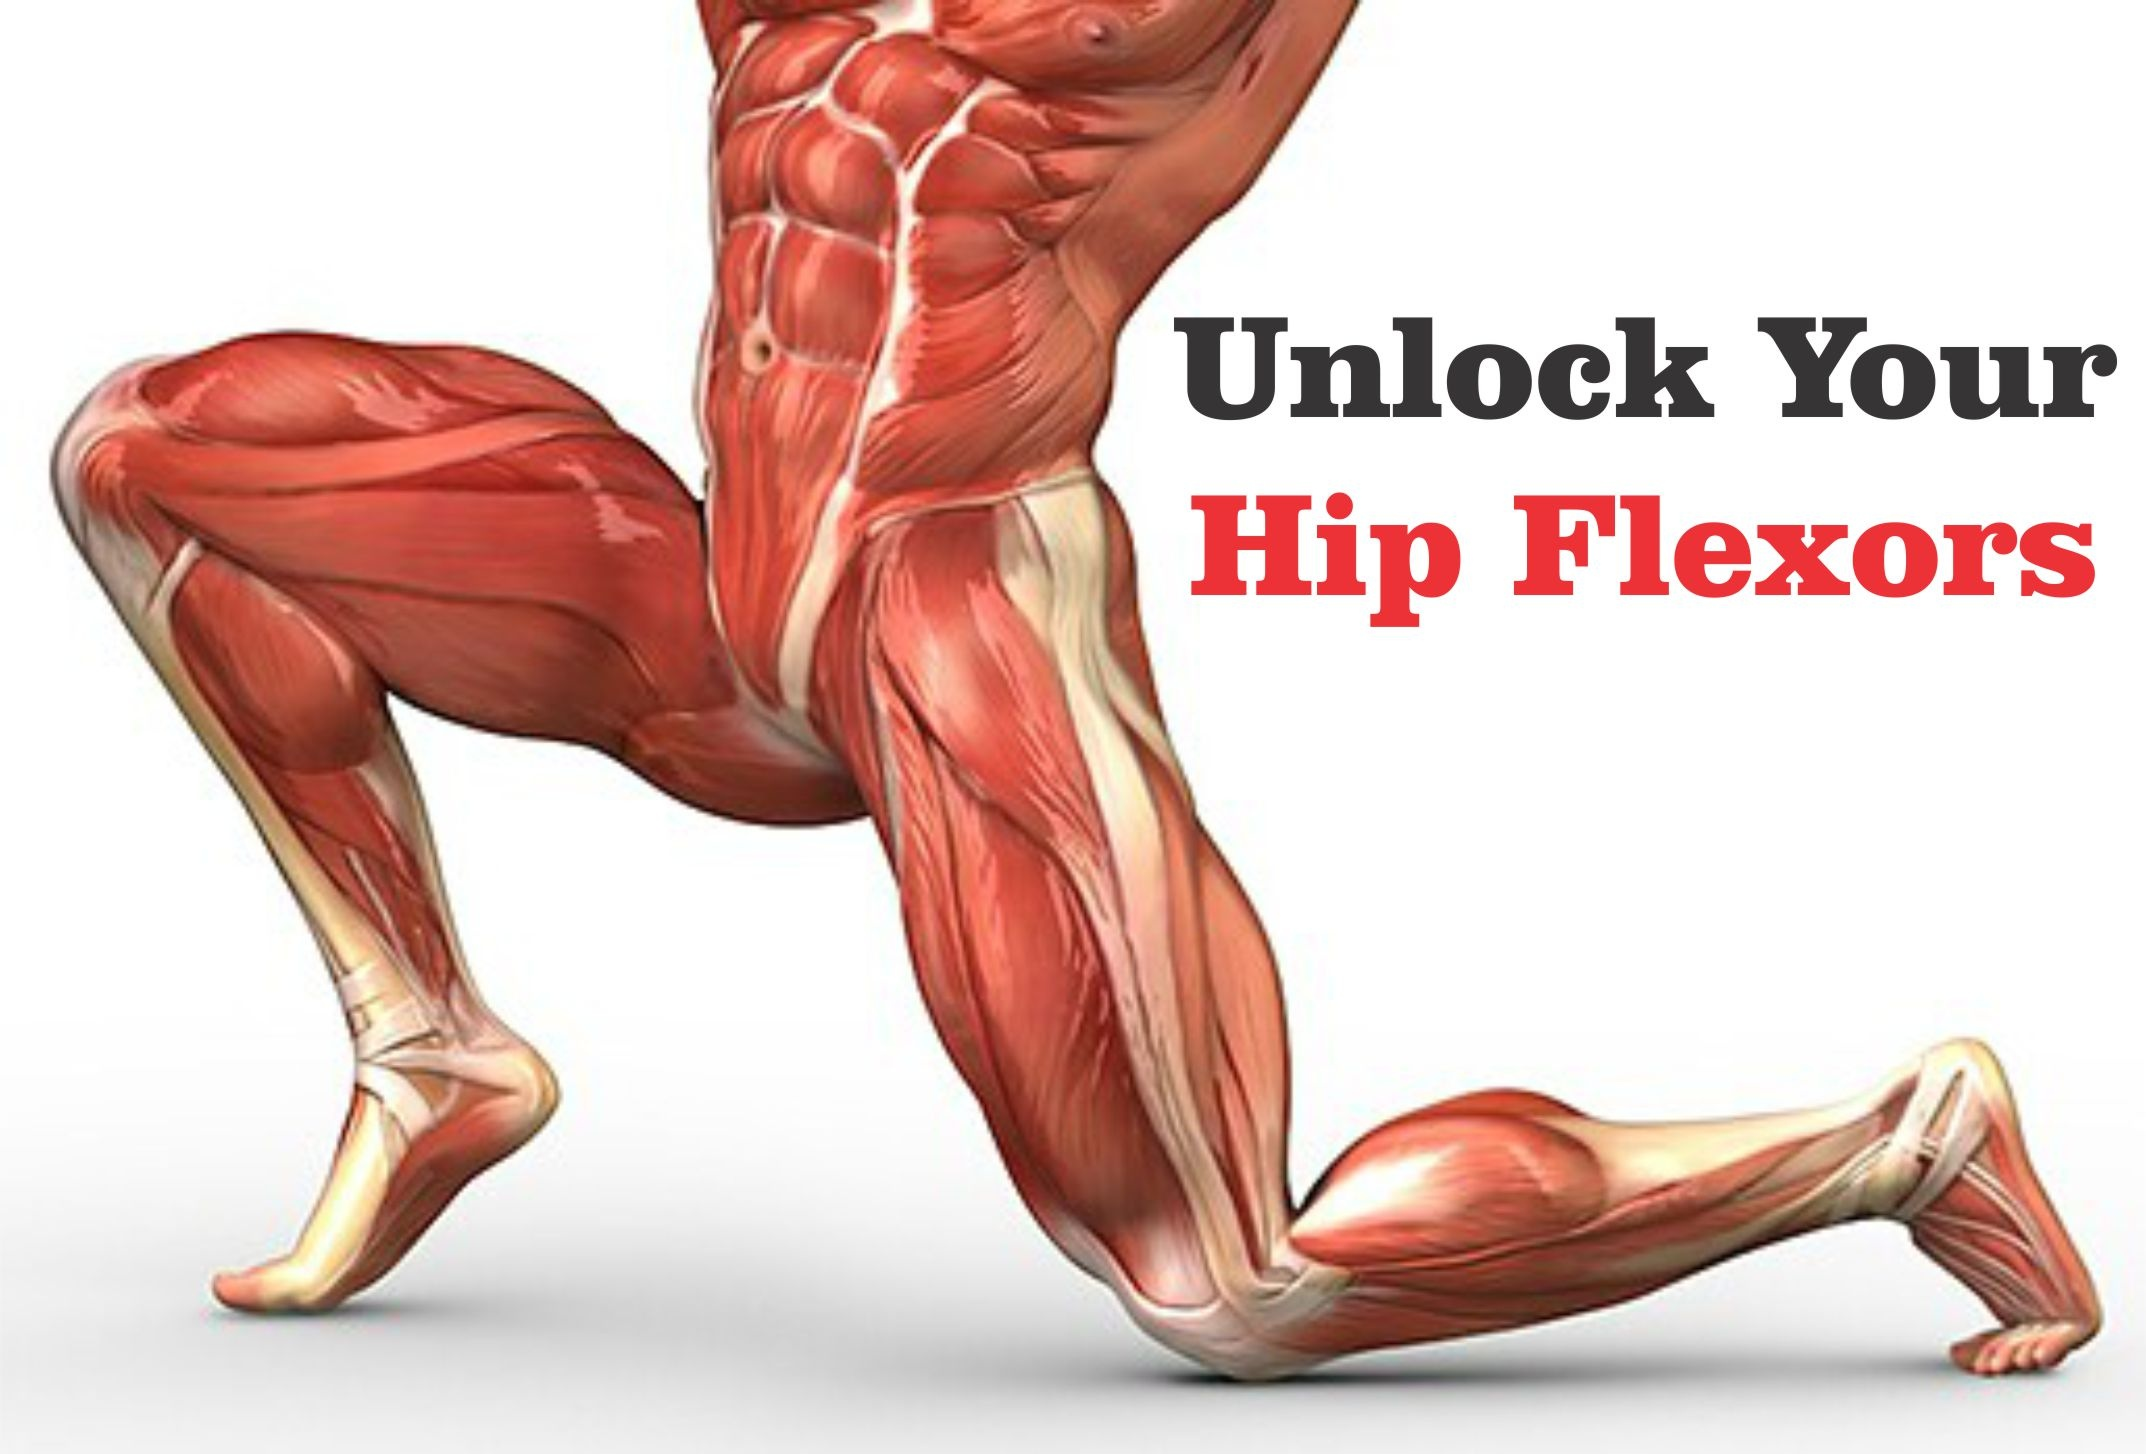 Tight Hip Flexors Kicking